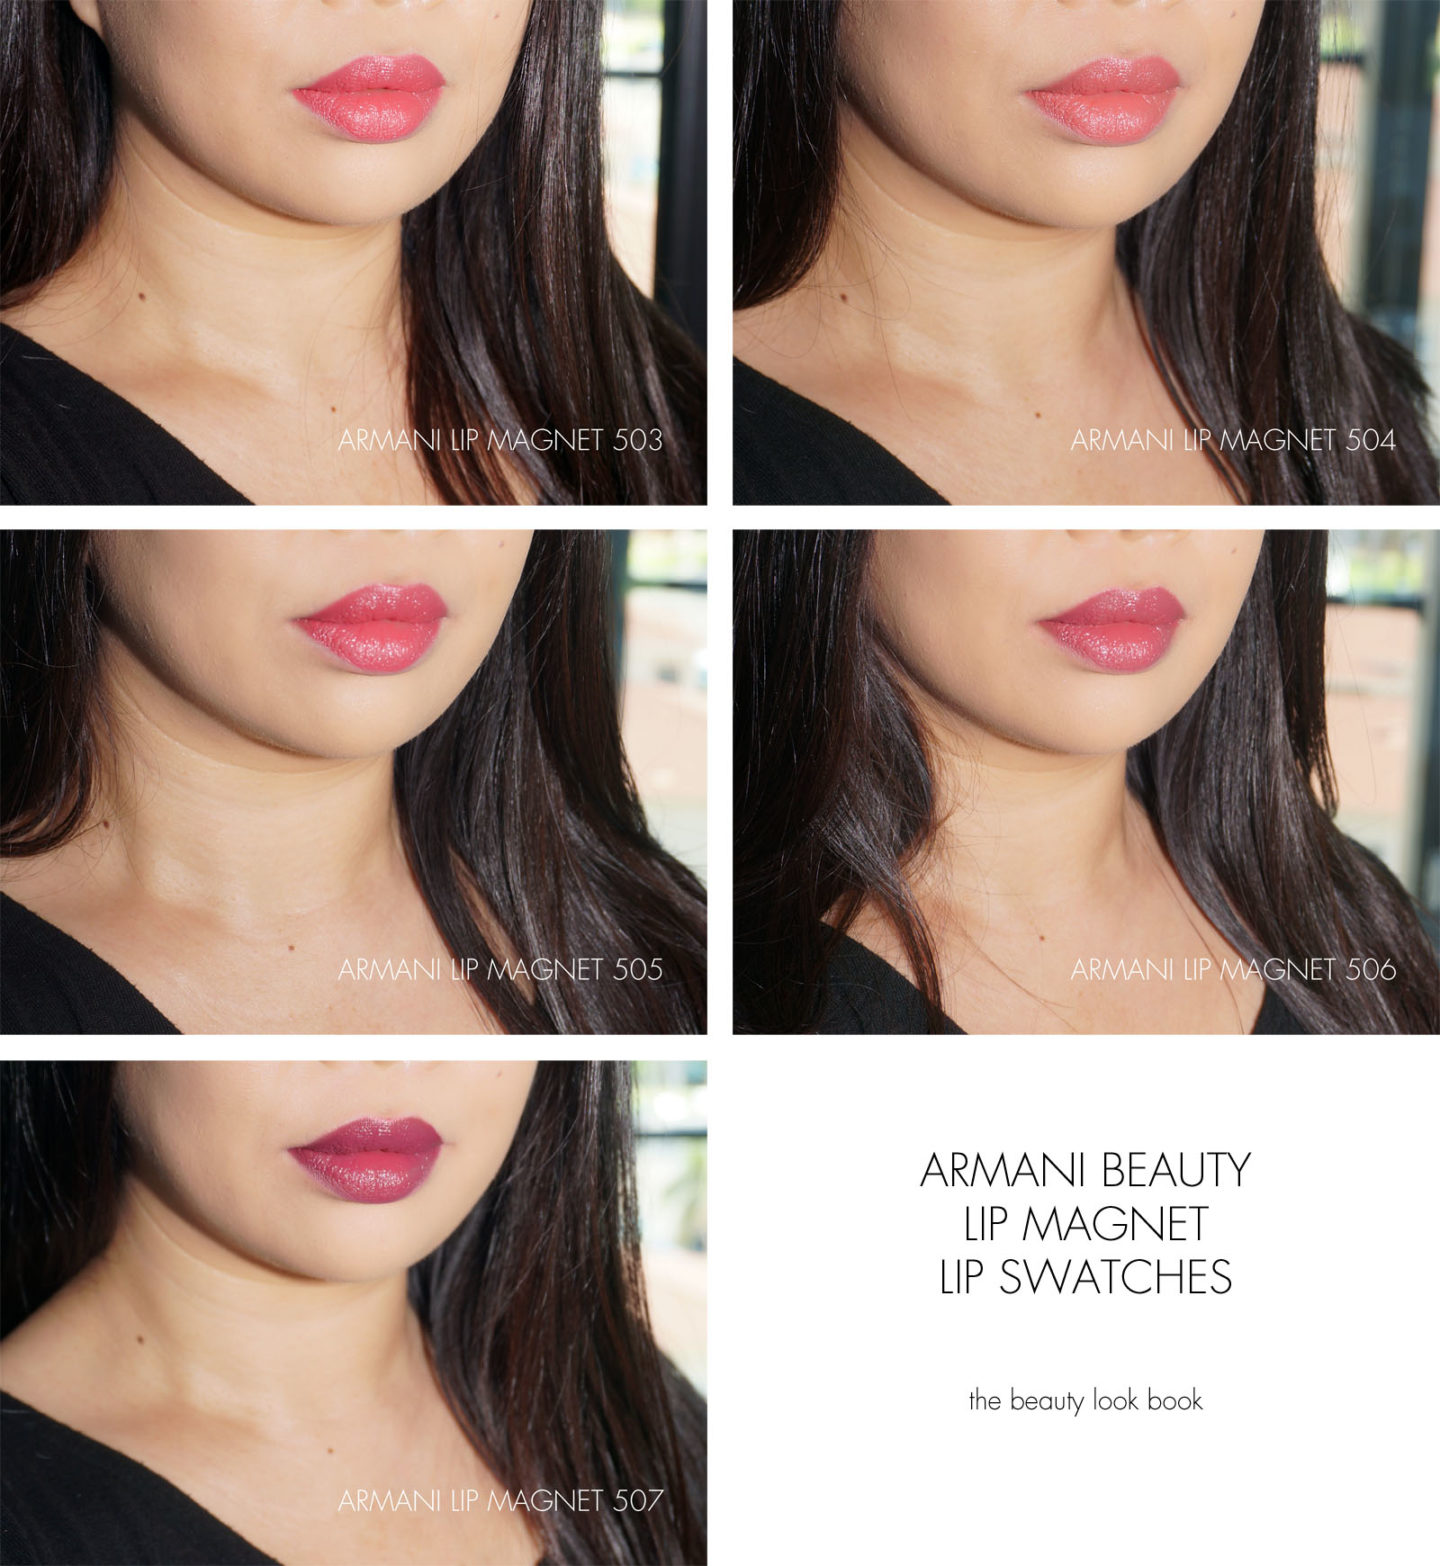 Armani Lip Magnet Swatches